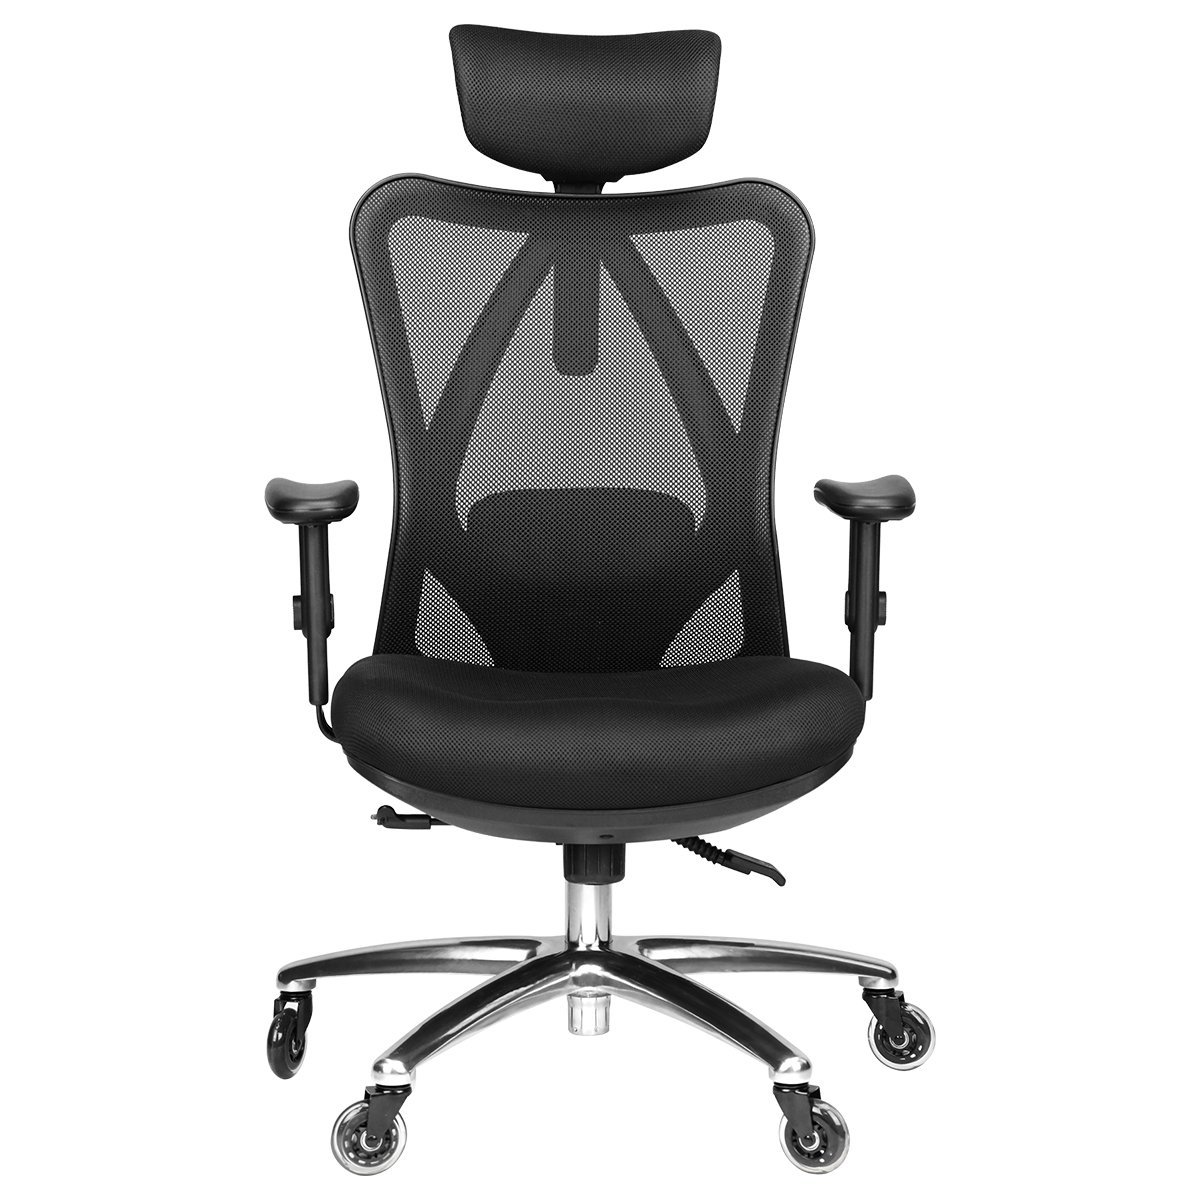 most comfortable office chair under 300